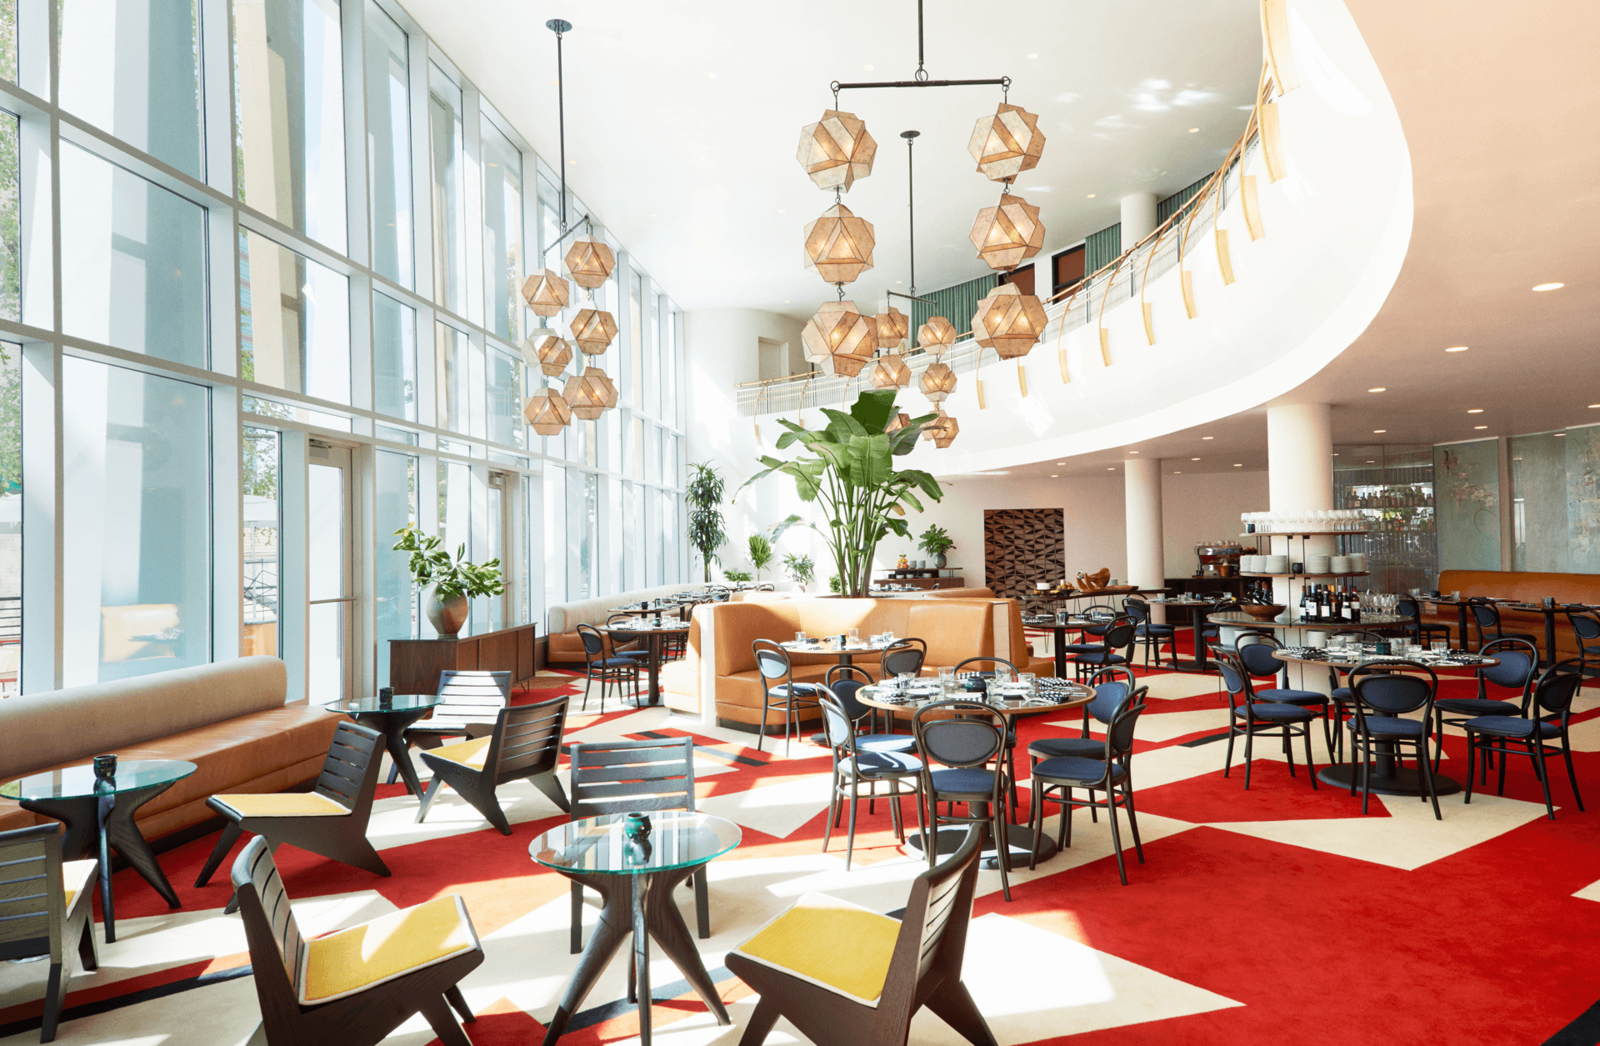 Photo 1 of 12 in Follow Us to 10 Midcentury Modern-Inspired Hotels Around the Globe